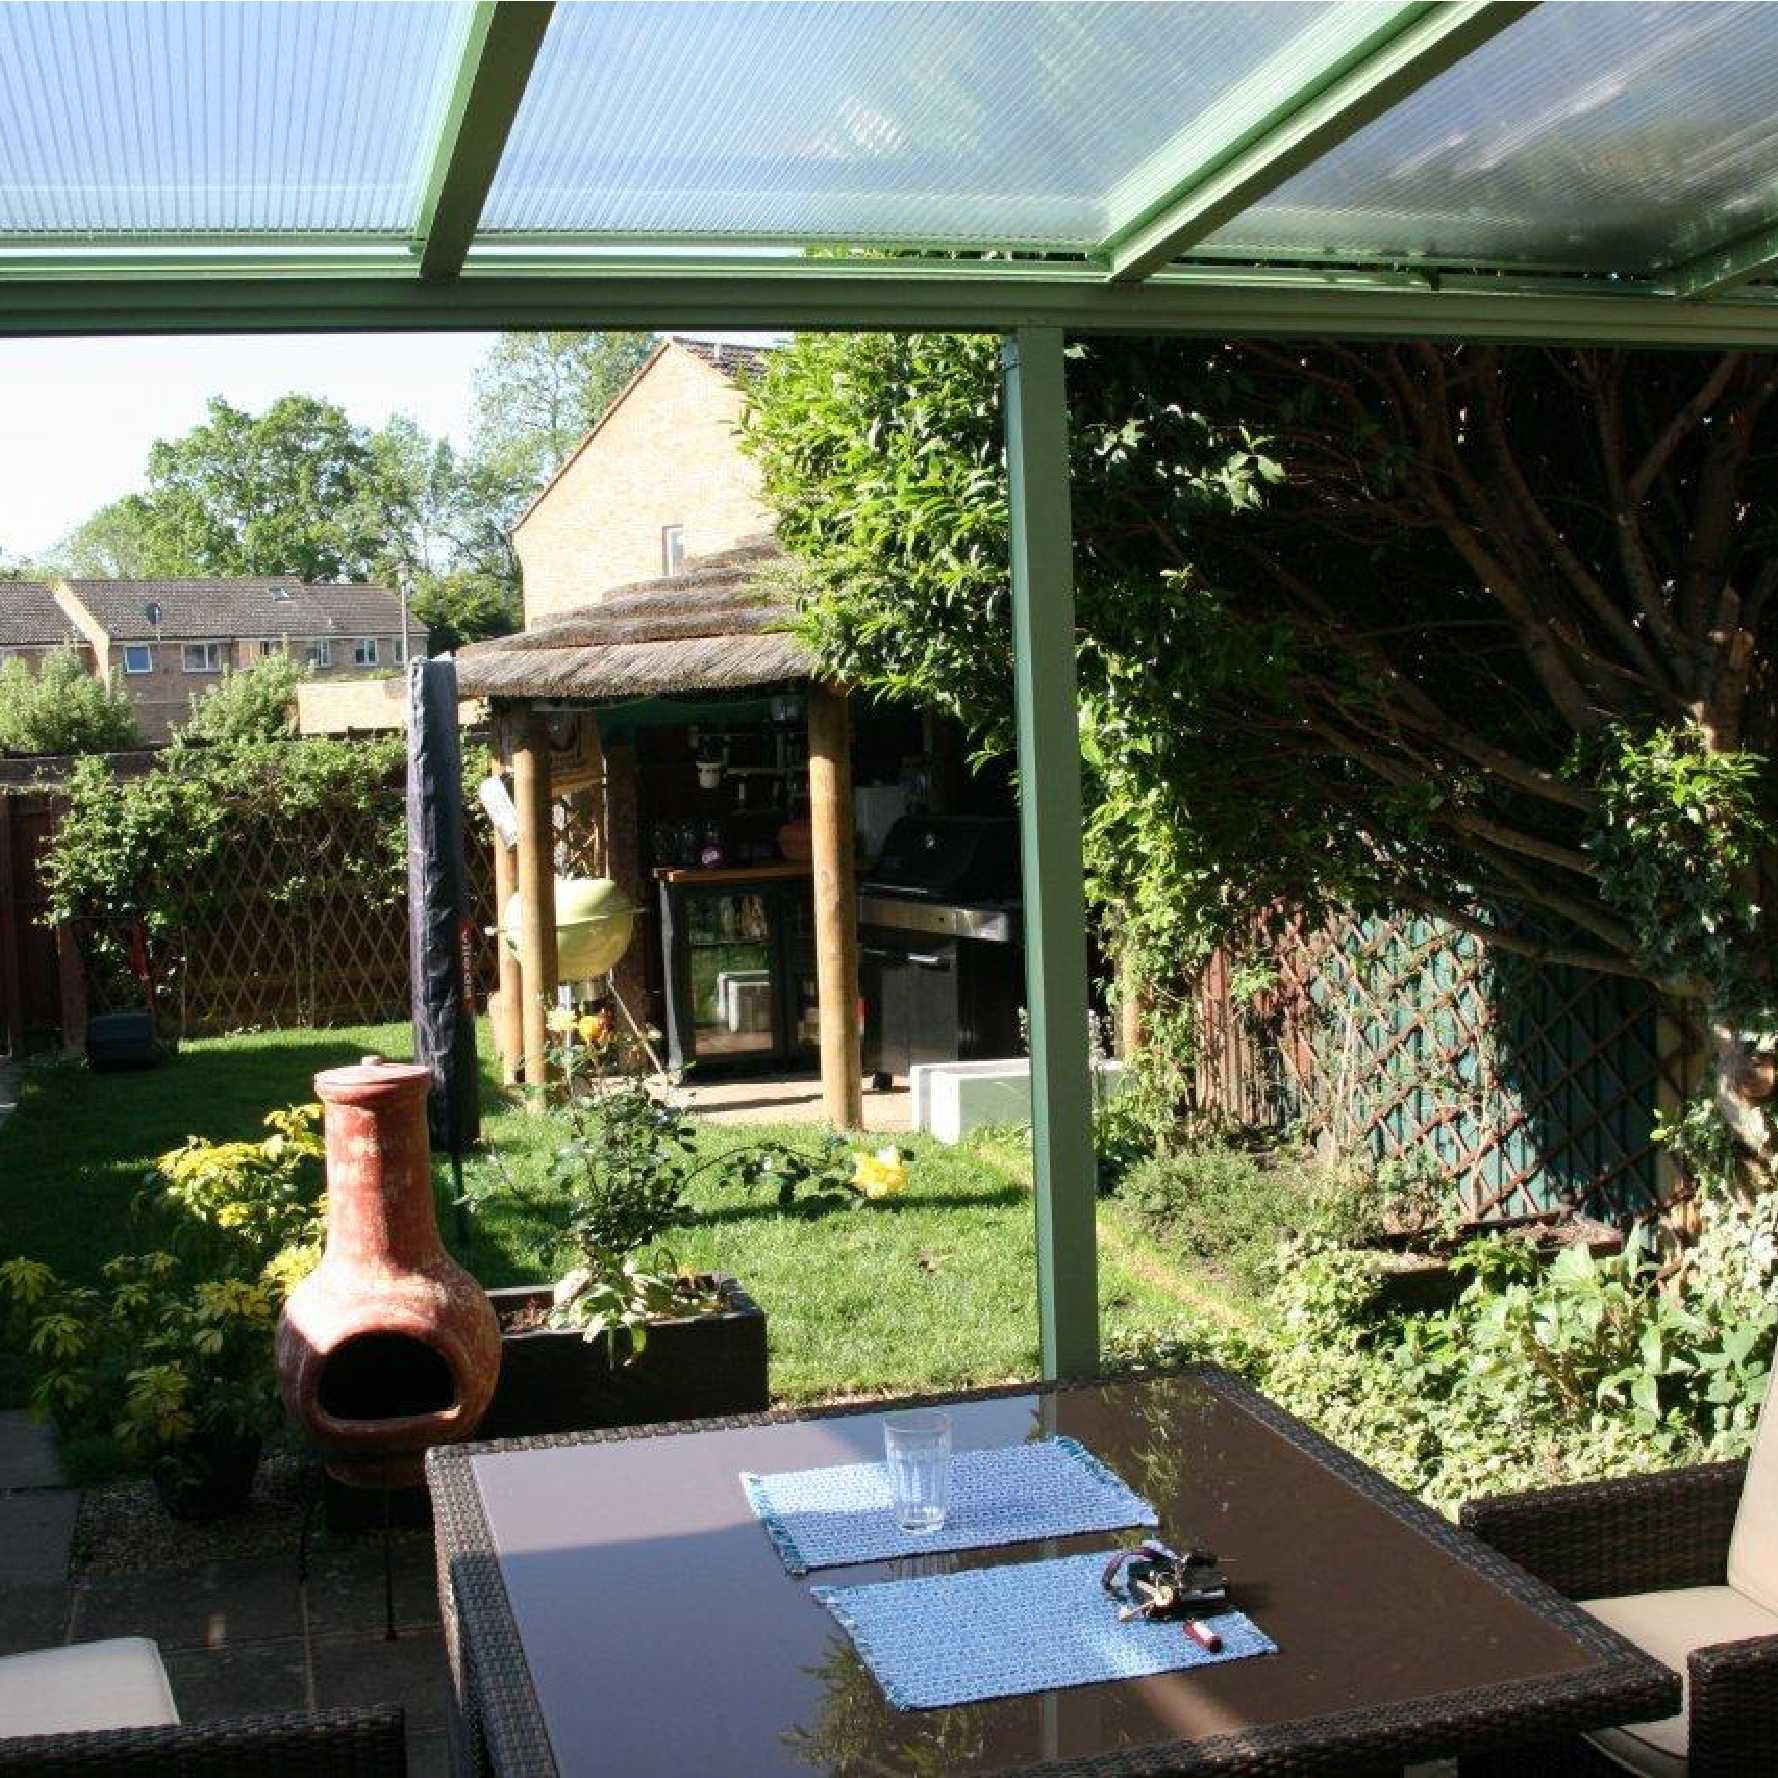 Affordable Omega Smart Lean-To Canopy with 16mm Polycarbonate Glazing - 9.5m (W) x 2.0m (P), (5) Supporting Posts